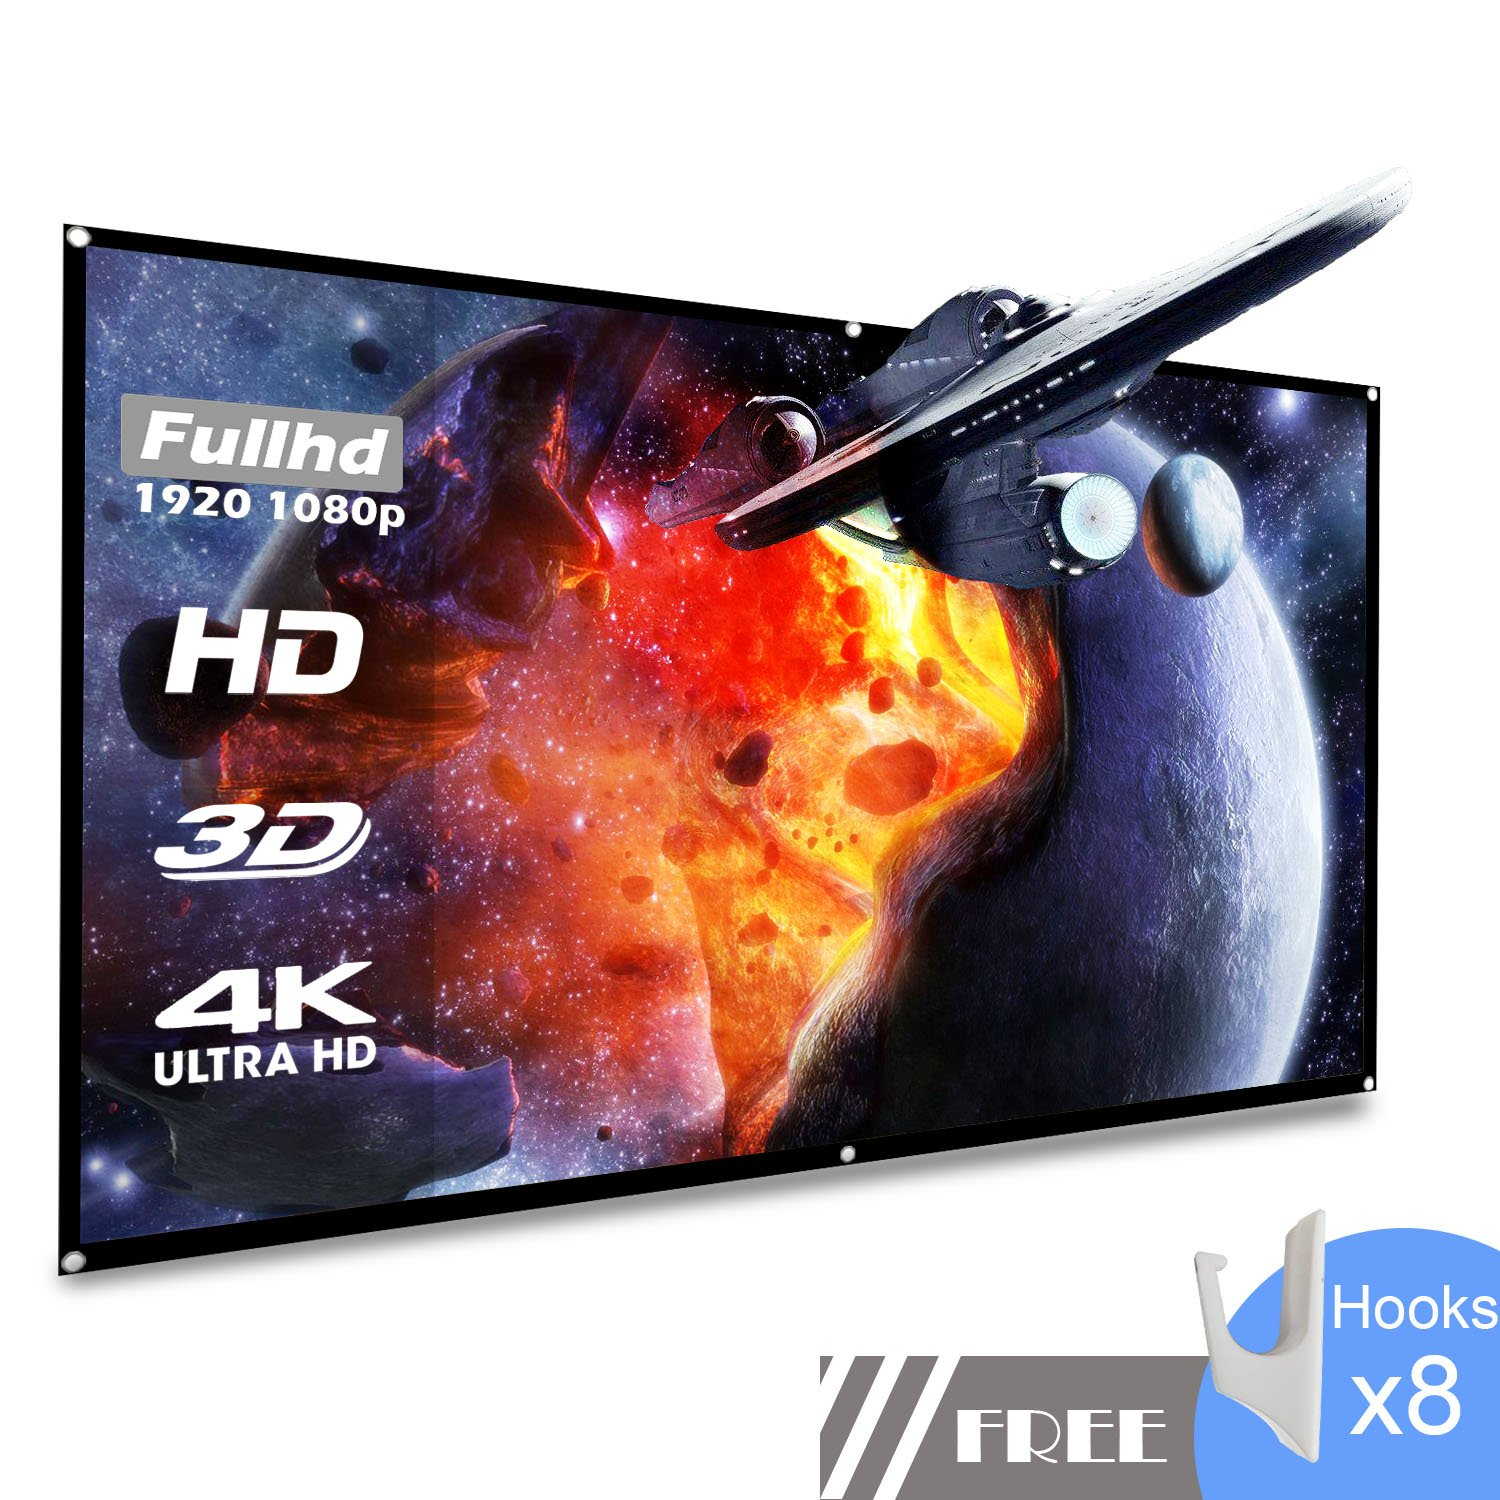 koogoo Projection Projector Screen 100 Inch HD 16:9, Portable Foldable Indoor Outdoor Movie Screen,Support Double Sided Projection, Suitable for HDTV/Sports/Movies/Presentations (100 inch)